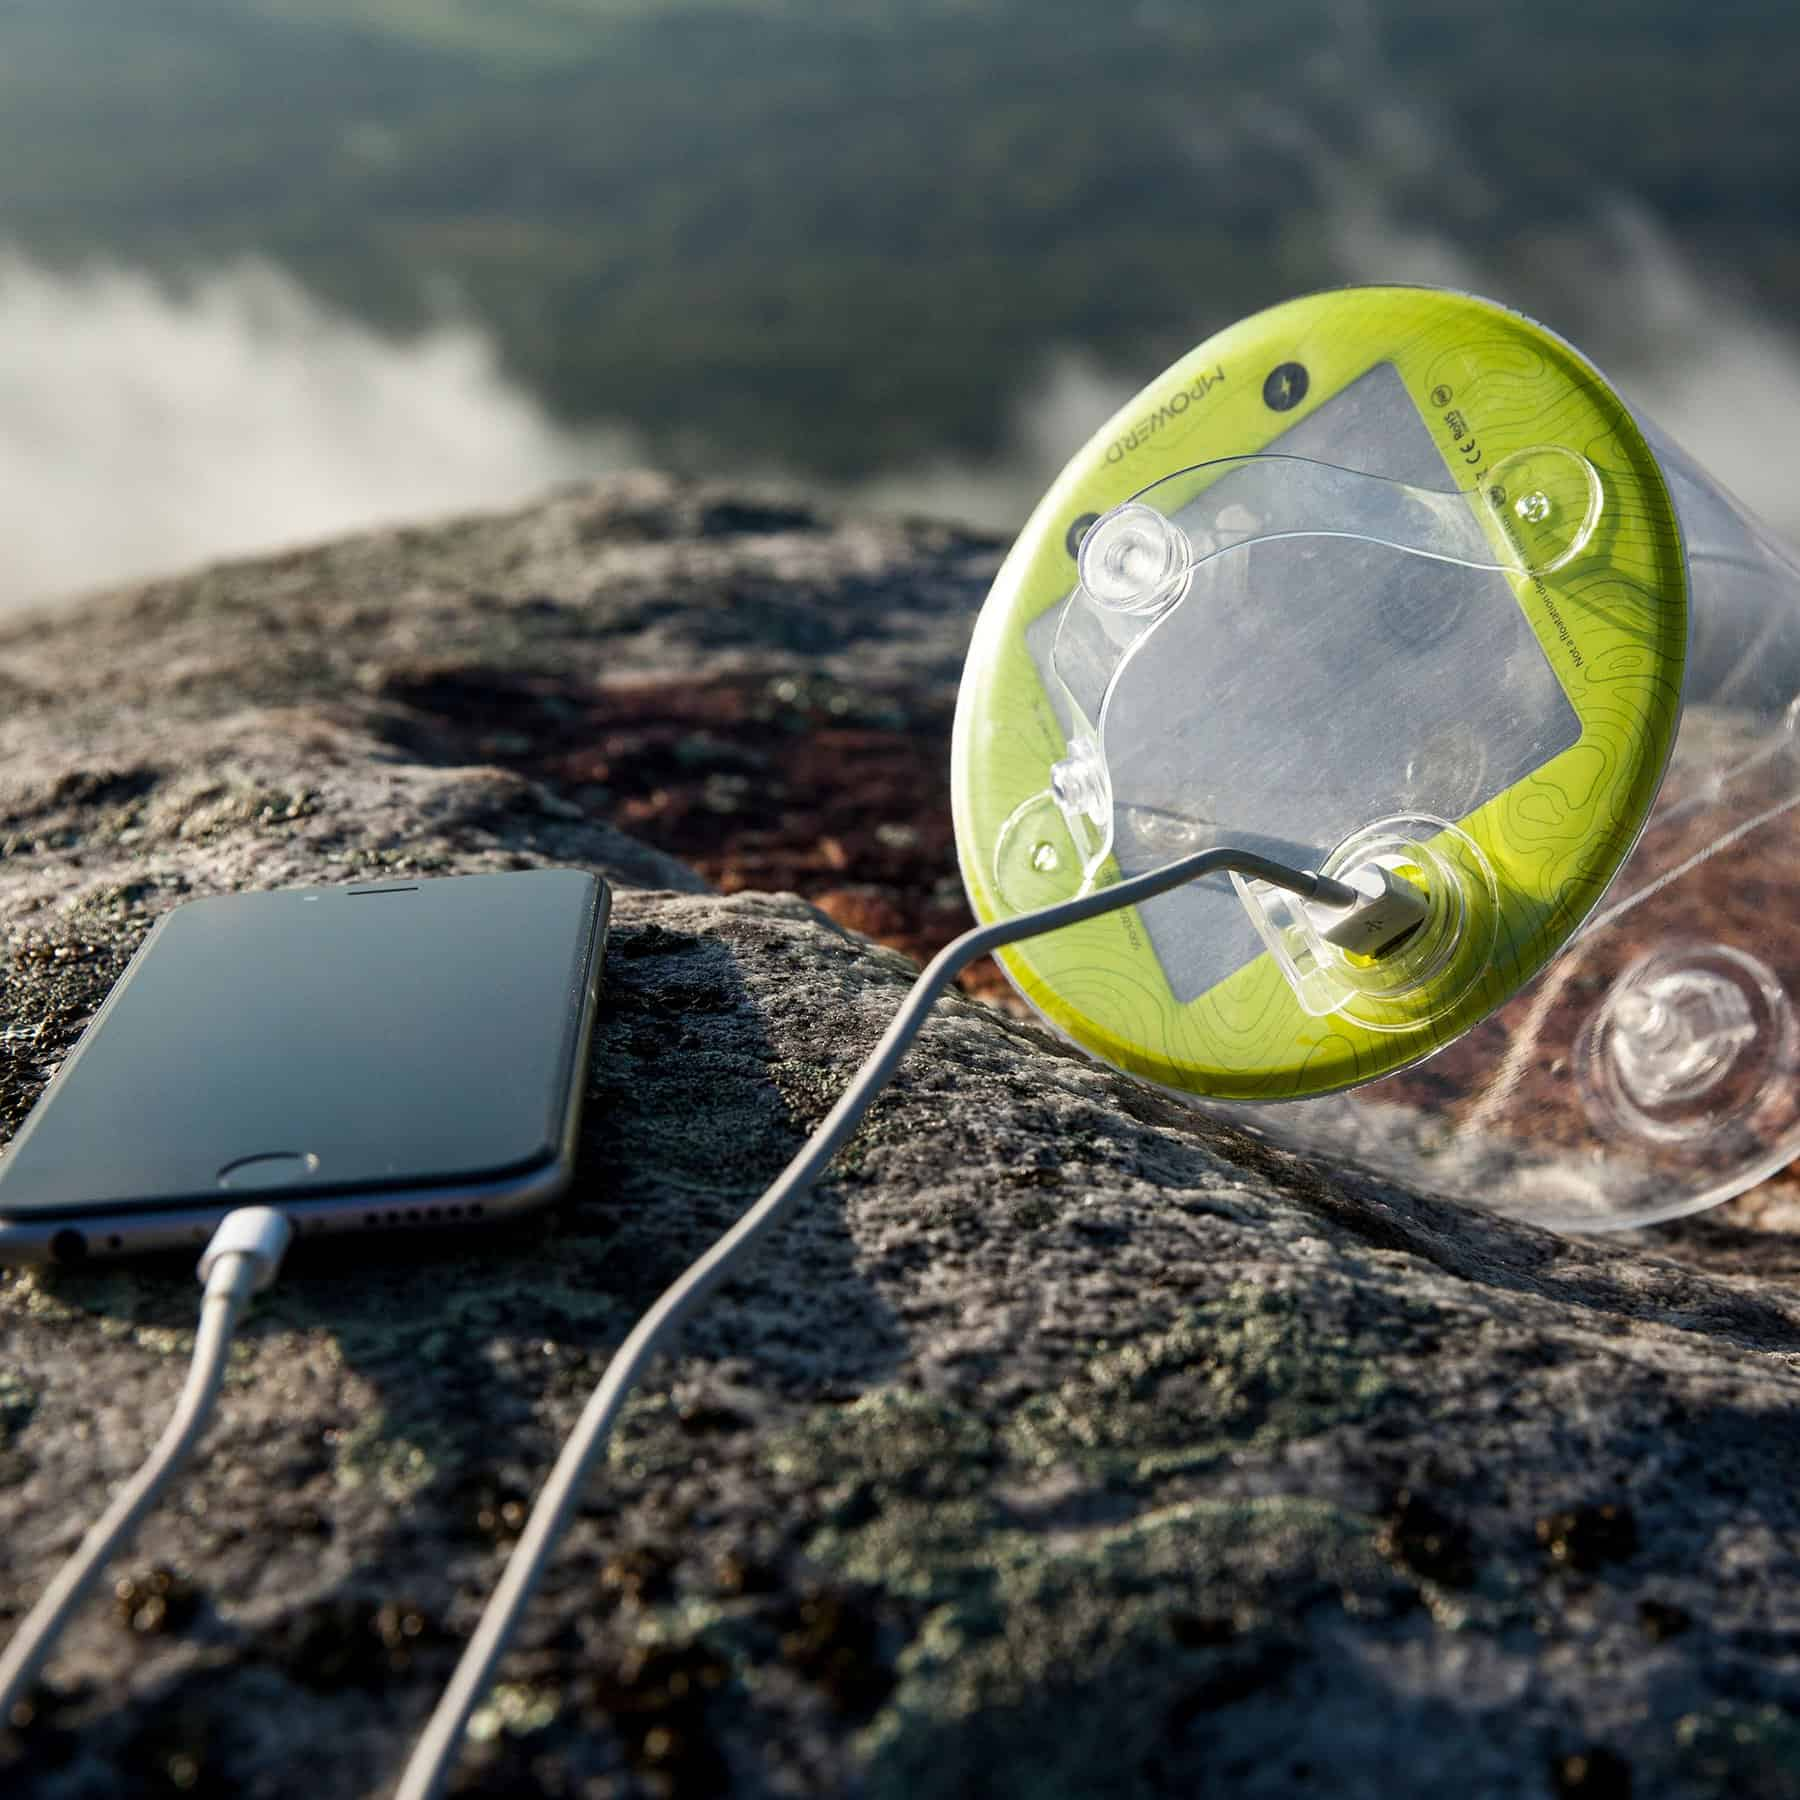 Luci Pro Series - Charge your light and your mobile phone